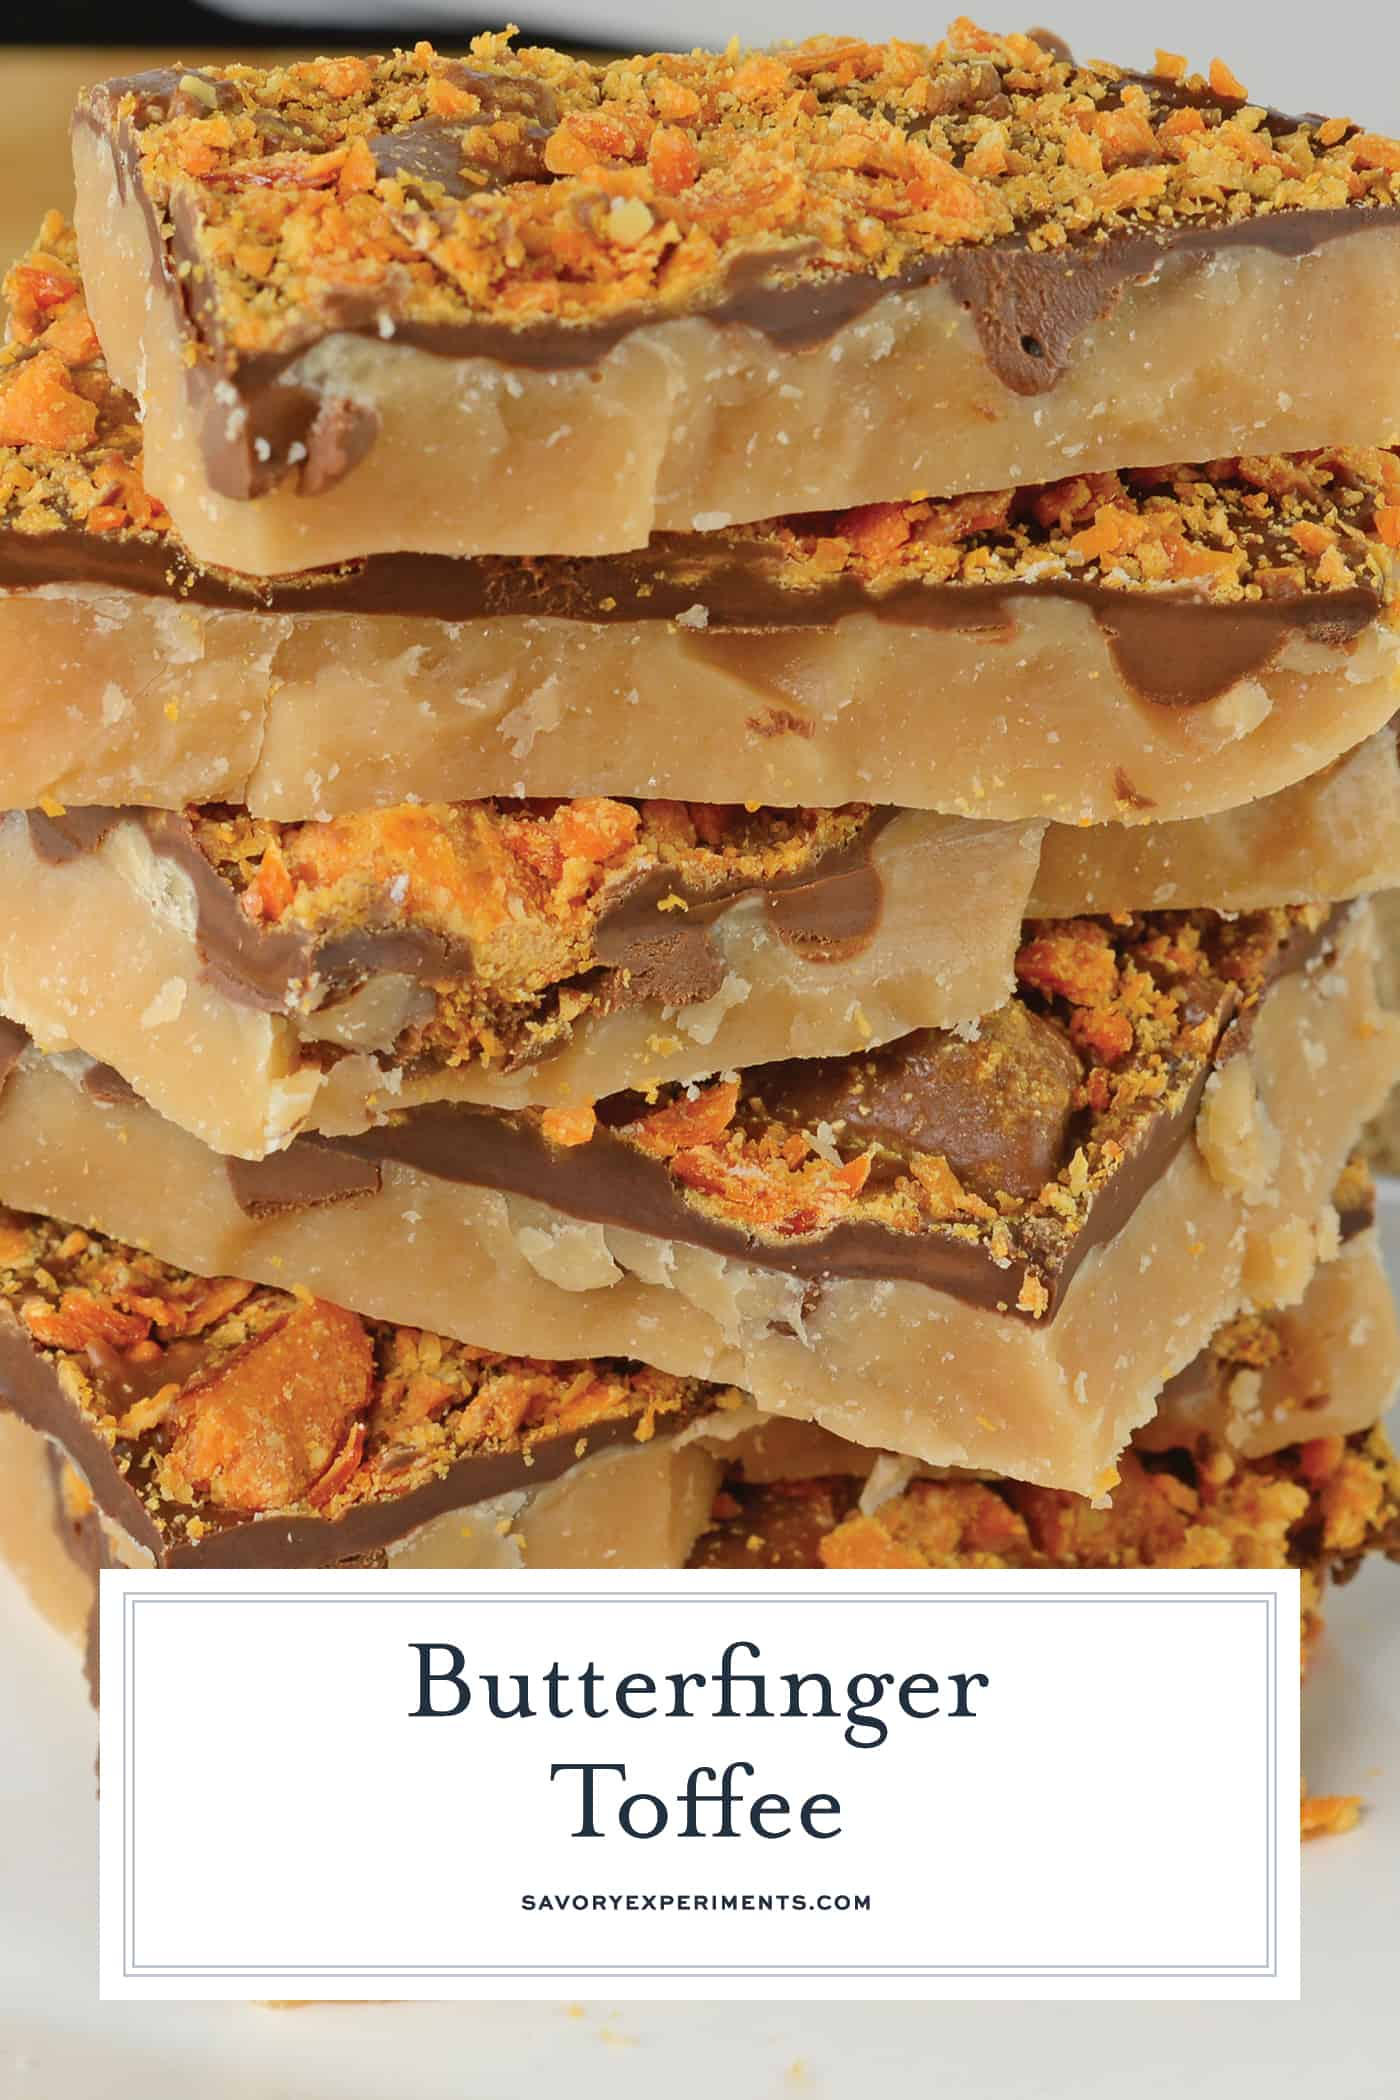 Candy Toffee is an easy holiday treat using only 6 ingredients and taking just 20 minutes! Make this easy toffee recipe for your holiday cookie tray! #buttertoffee #englishtoffee www.savoryexperiments.com